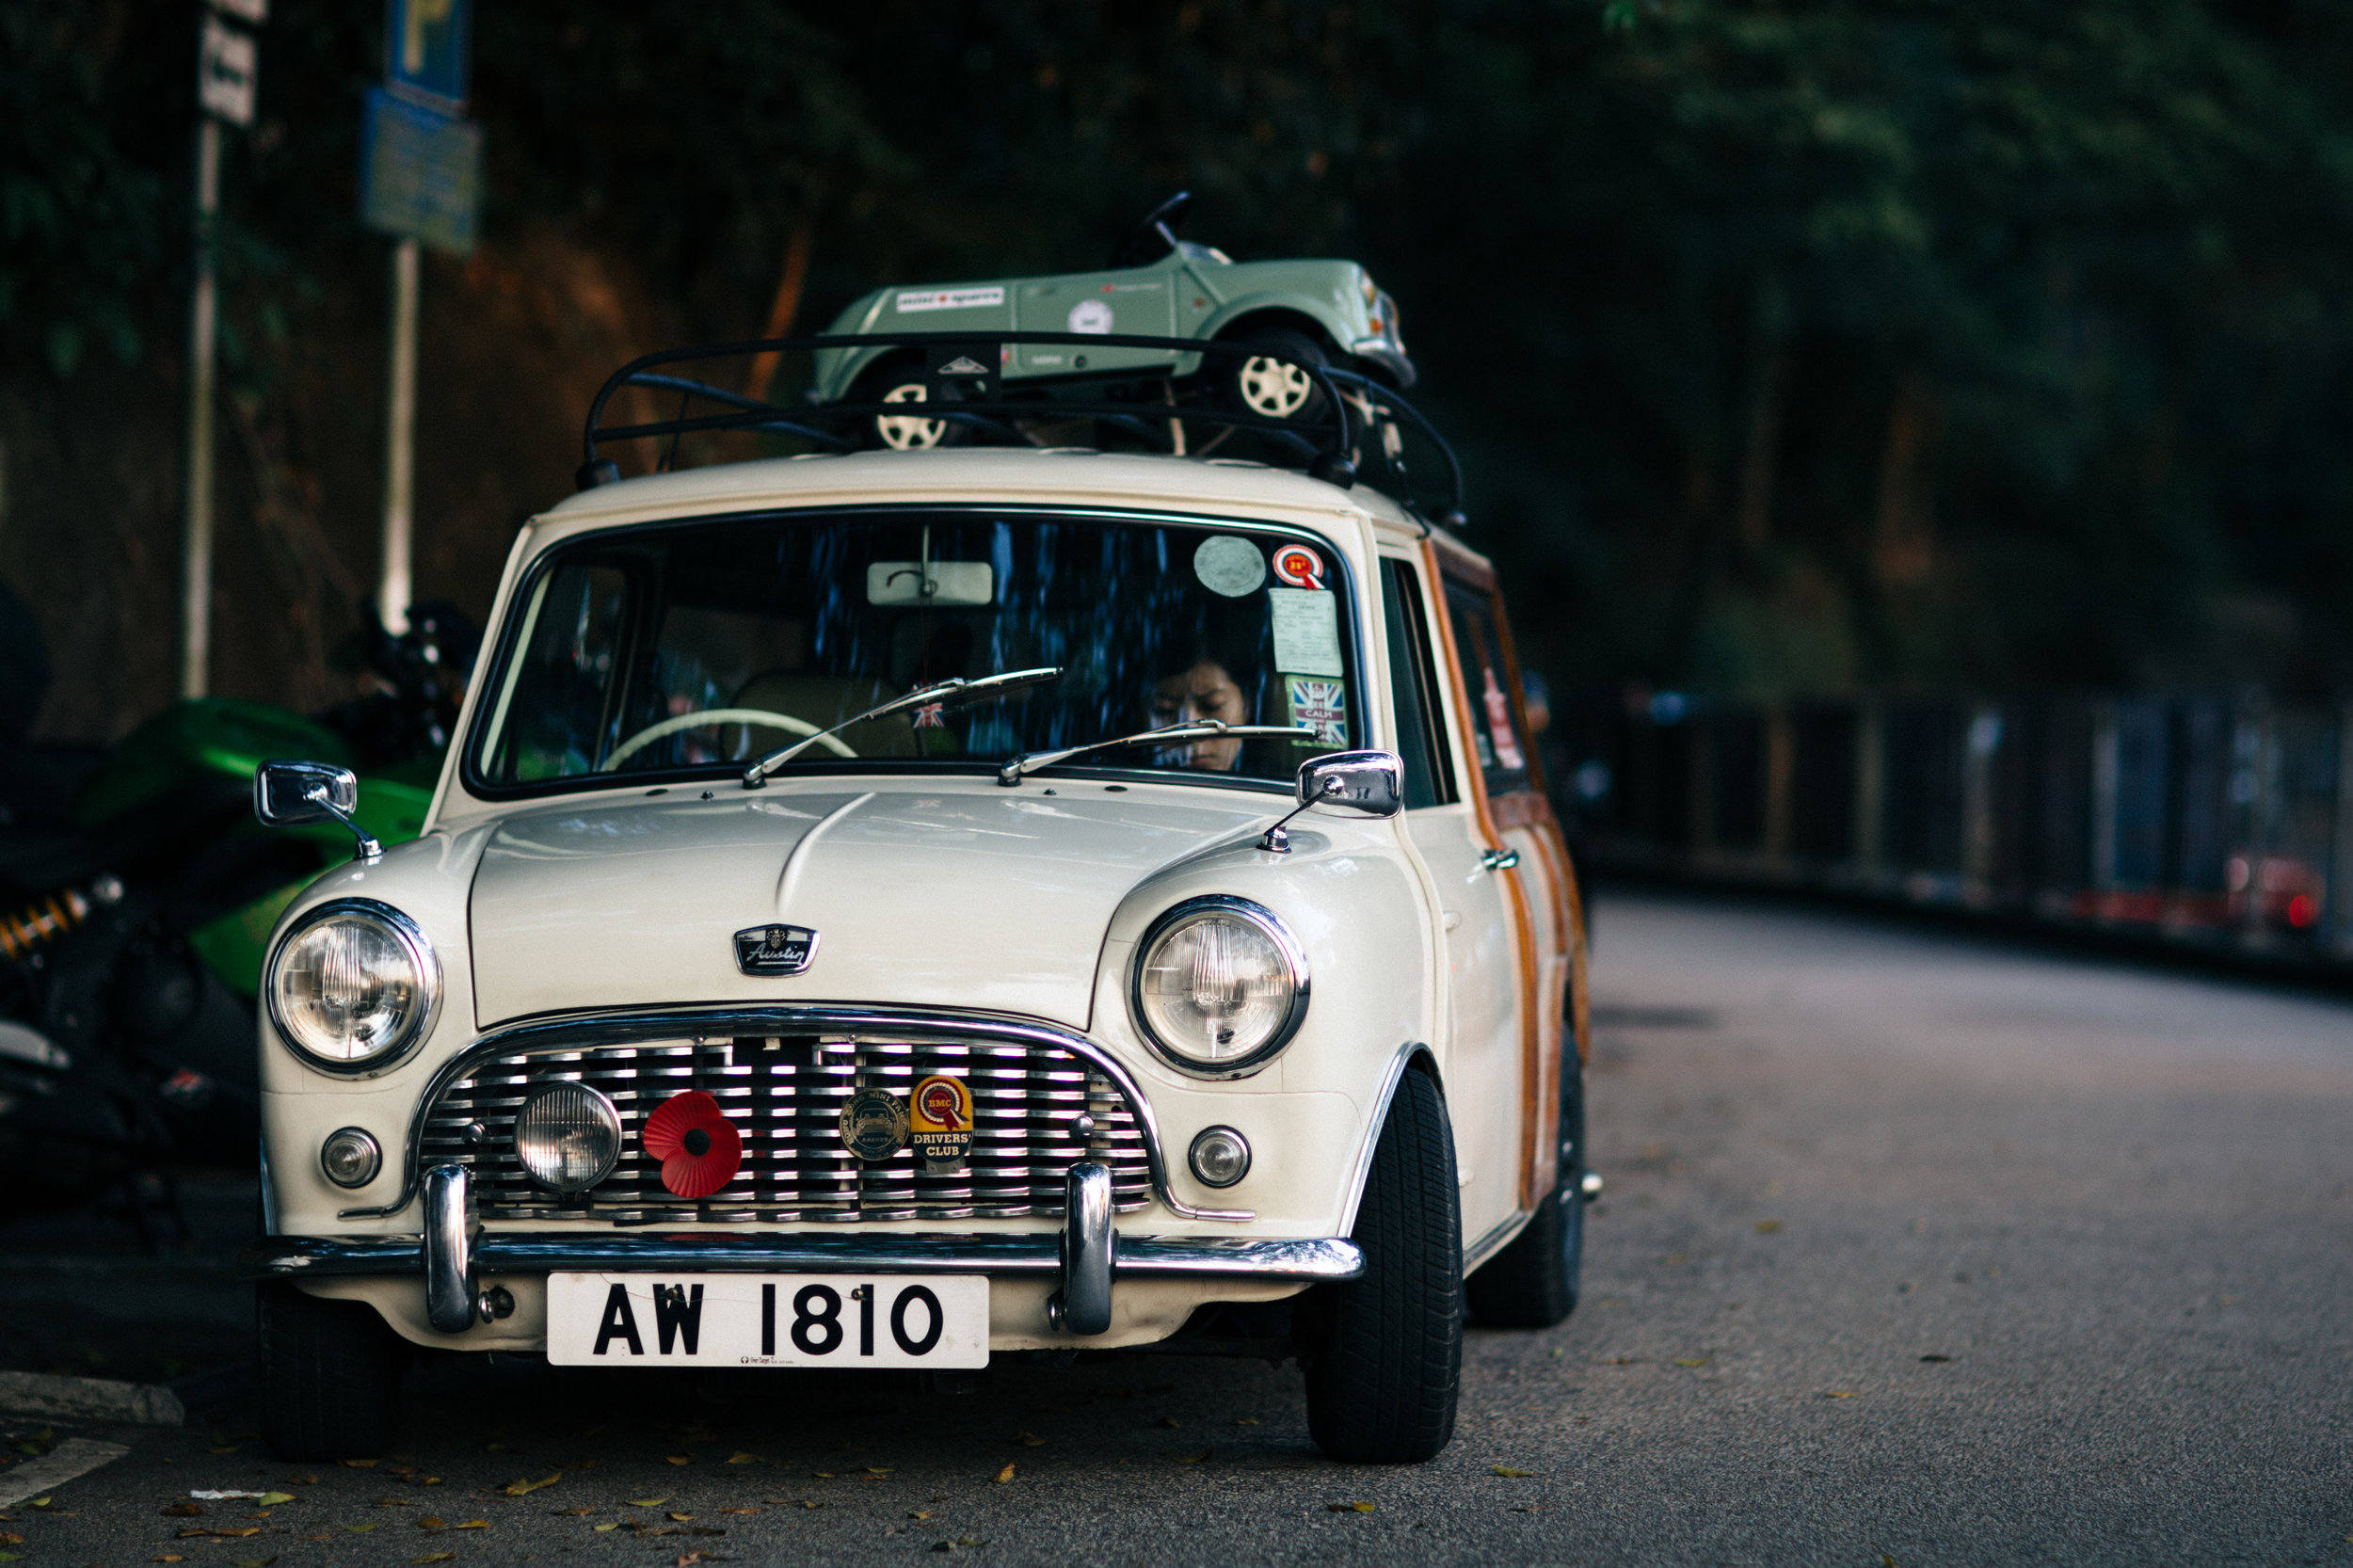 A classic white austin mini with roof rack at The Peak in Hong Kong